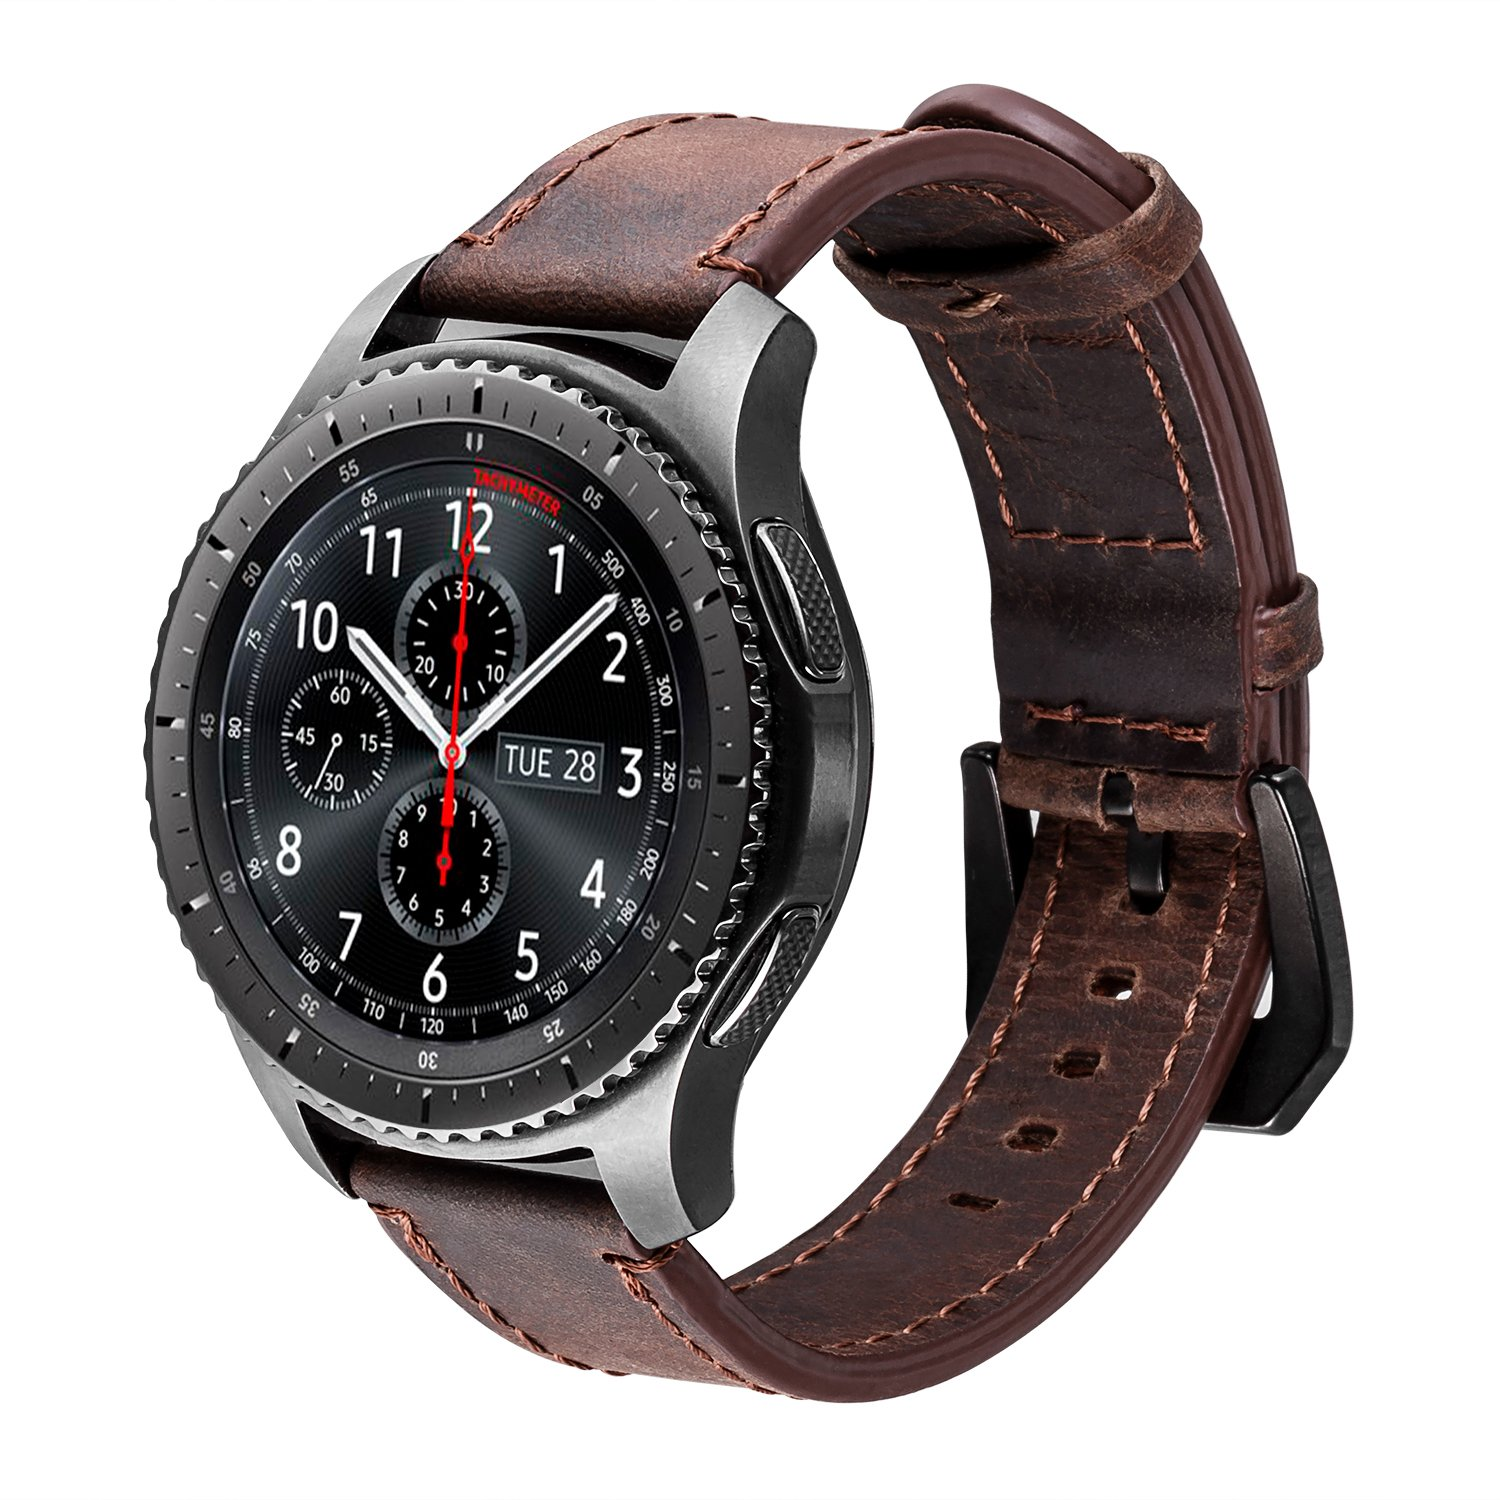 iBazal Gear S3 Watch Band 46mm, Gear S3 Frontier/Classic Bands with Black Clasp 22mm Genuine Leather Replacement Strap for Samsung Gear S3 Frontier/Classic SM-R760 / Pebble Time-Coffee+Black Clasp by iBazal